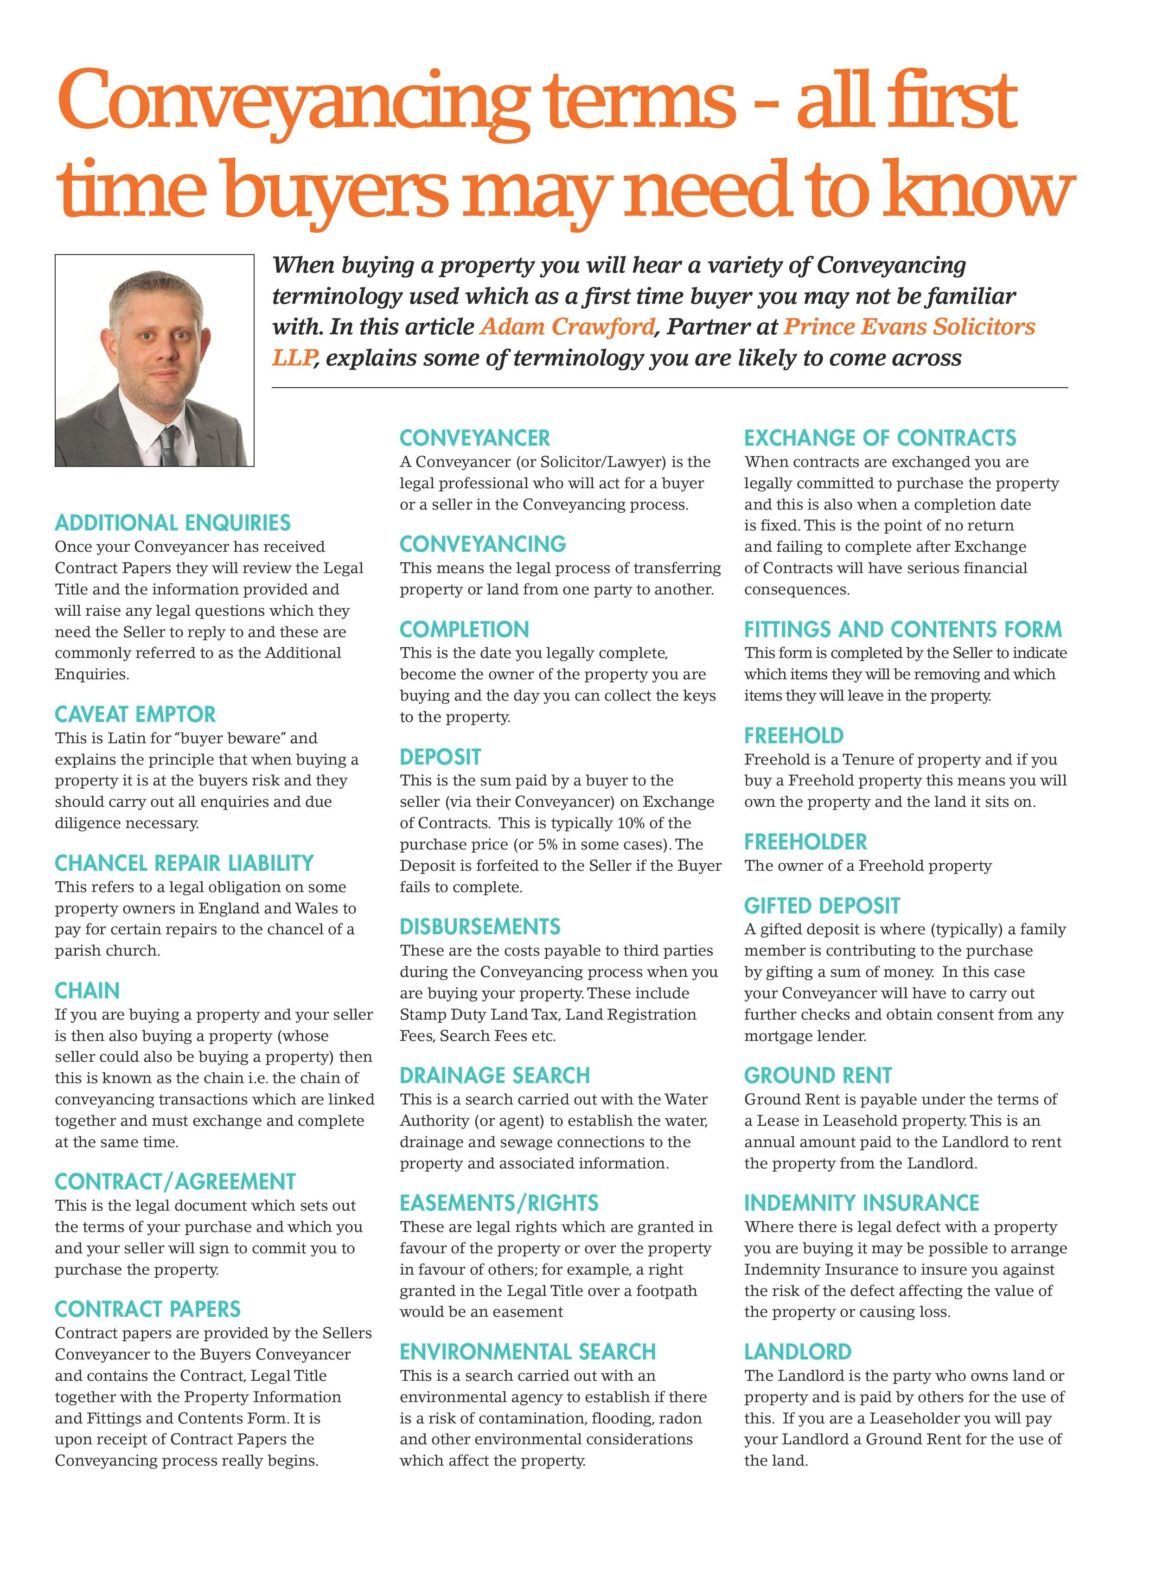 Conveyancing Terminology – Magazine Feature